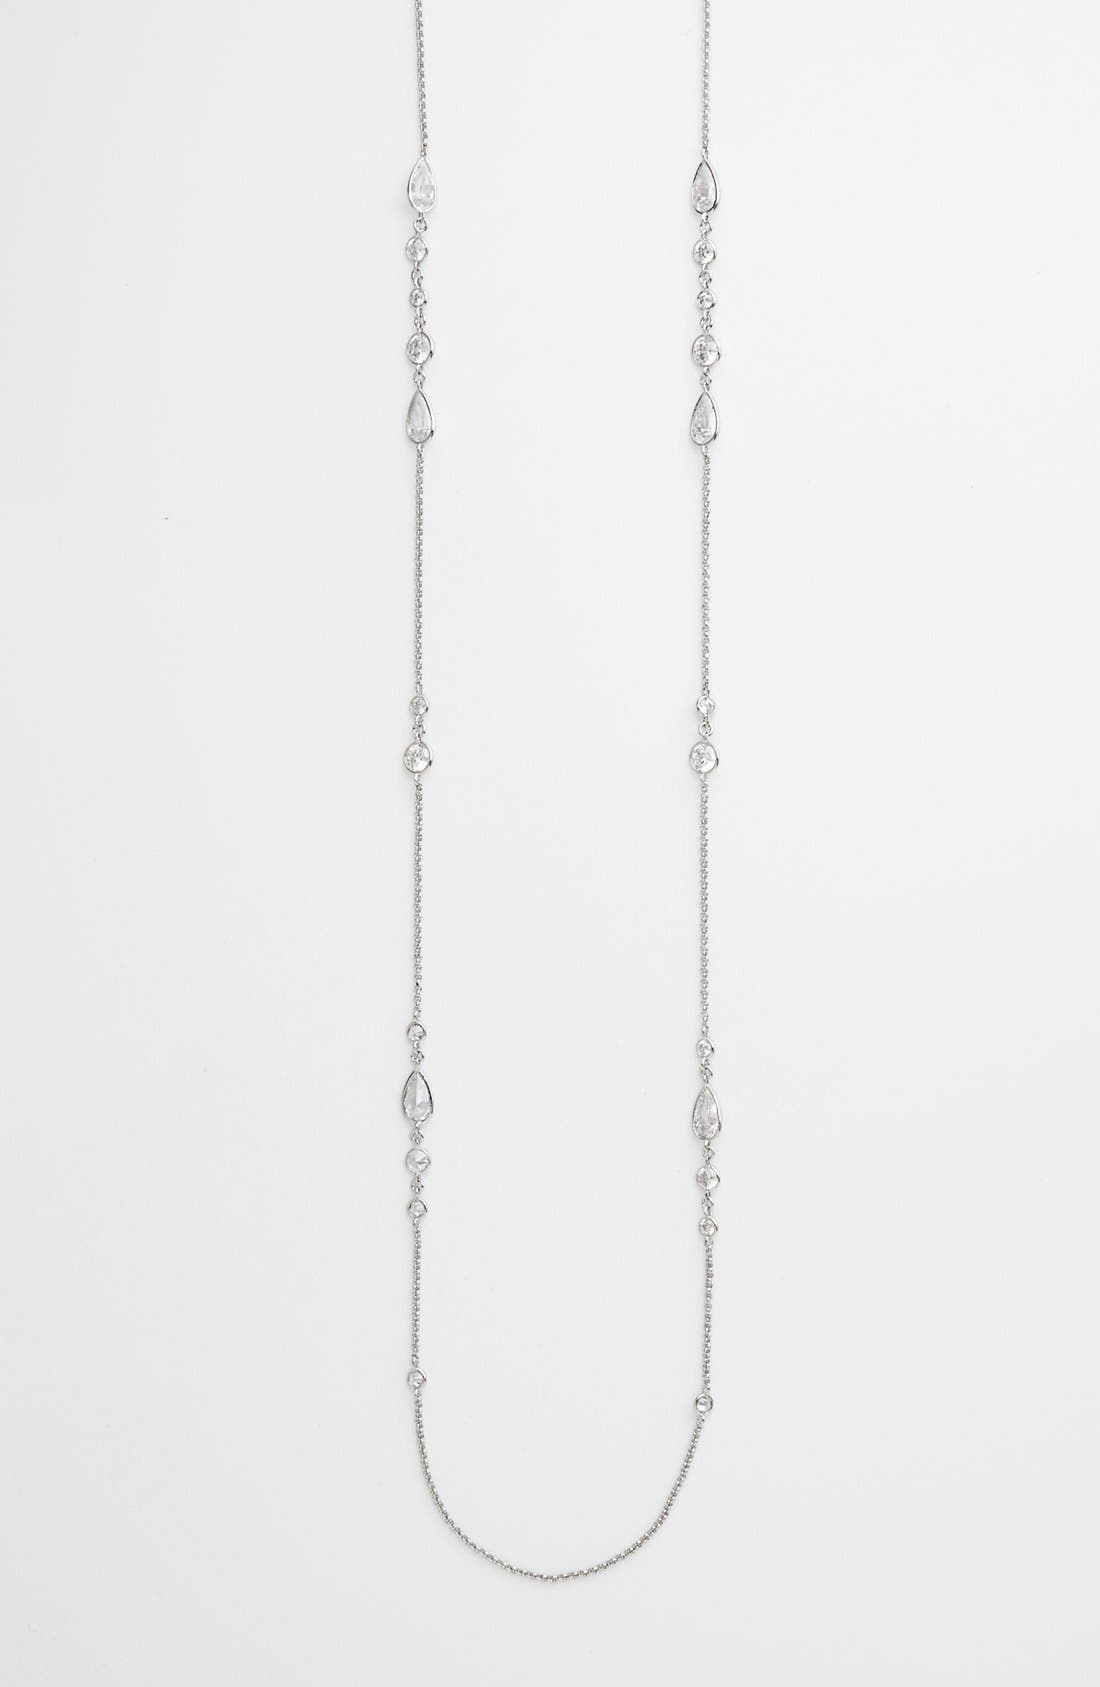 Main Image - Nadri Long Crystal Station Necklace (Nordstrom Exclusive)